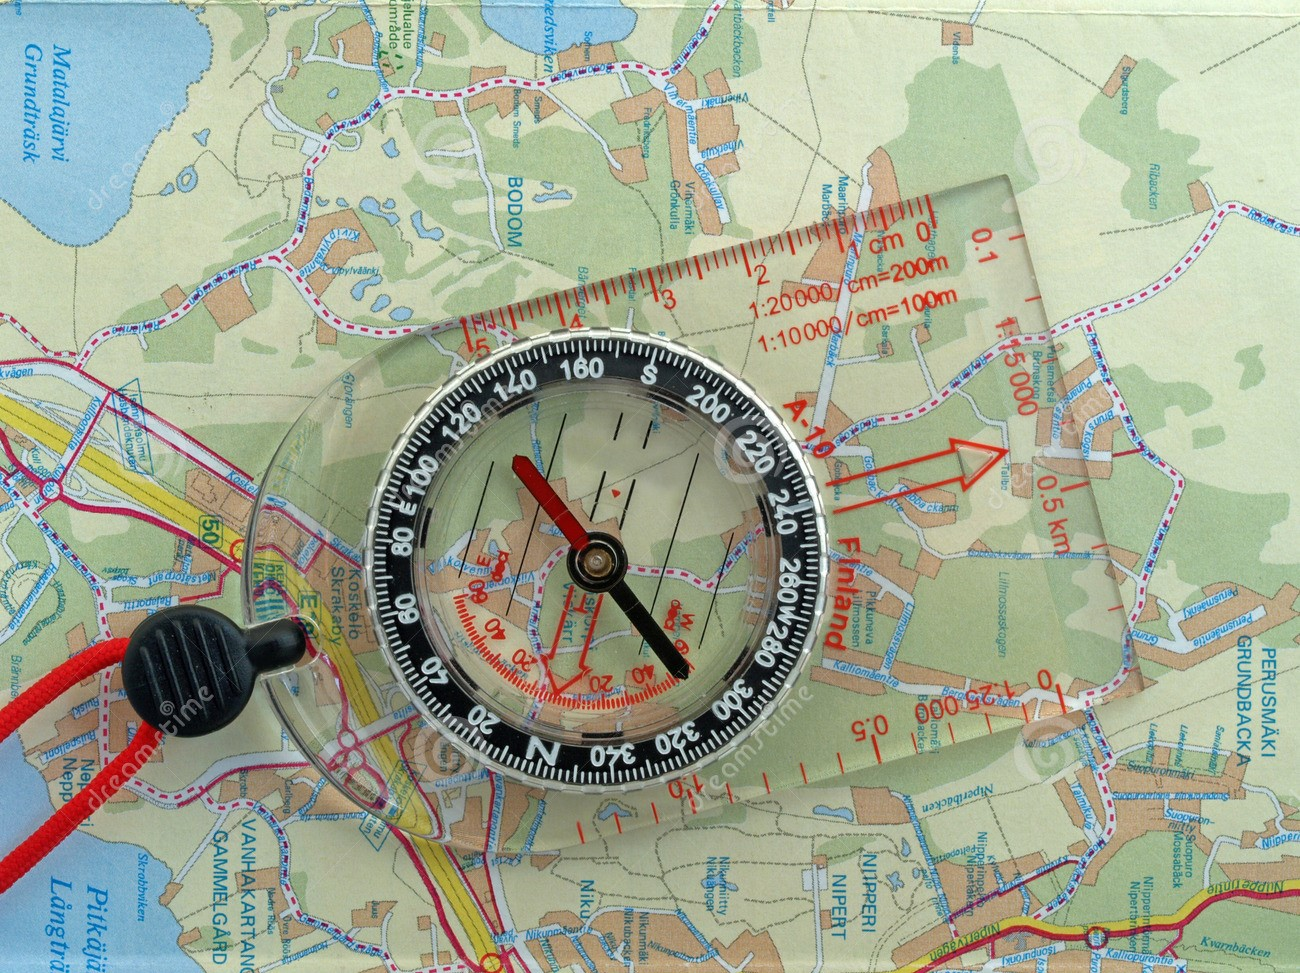 orienteering-compass-map-1055090 - Copie